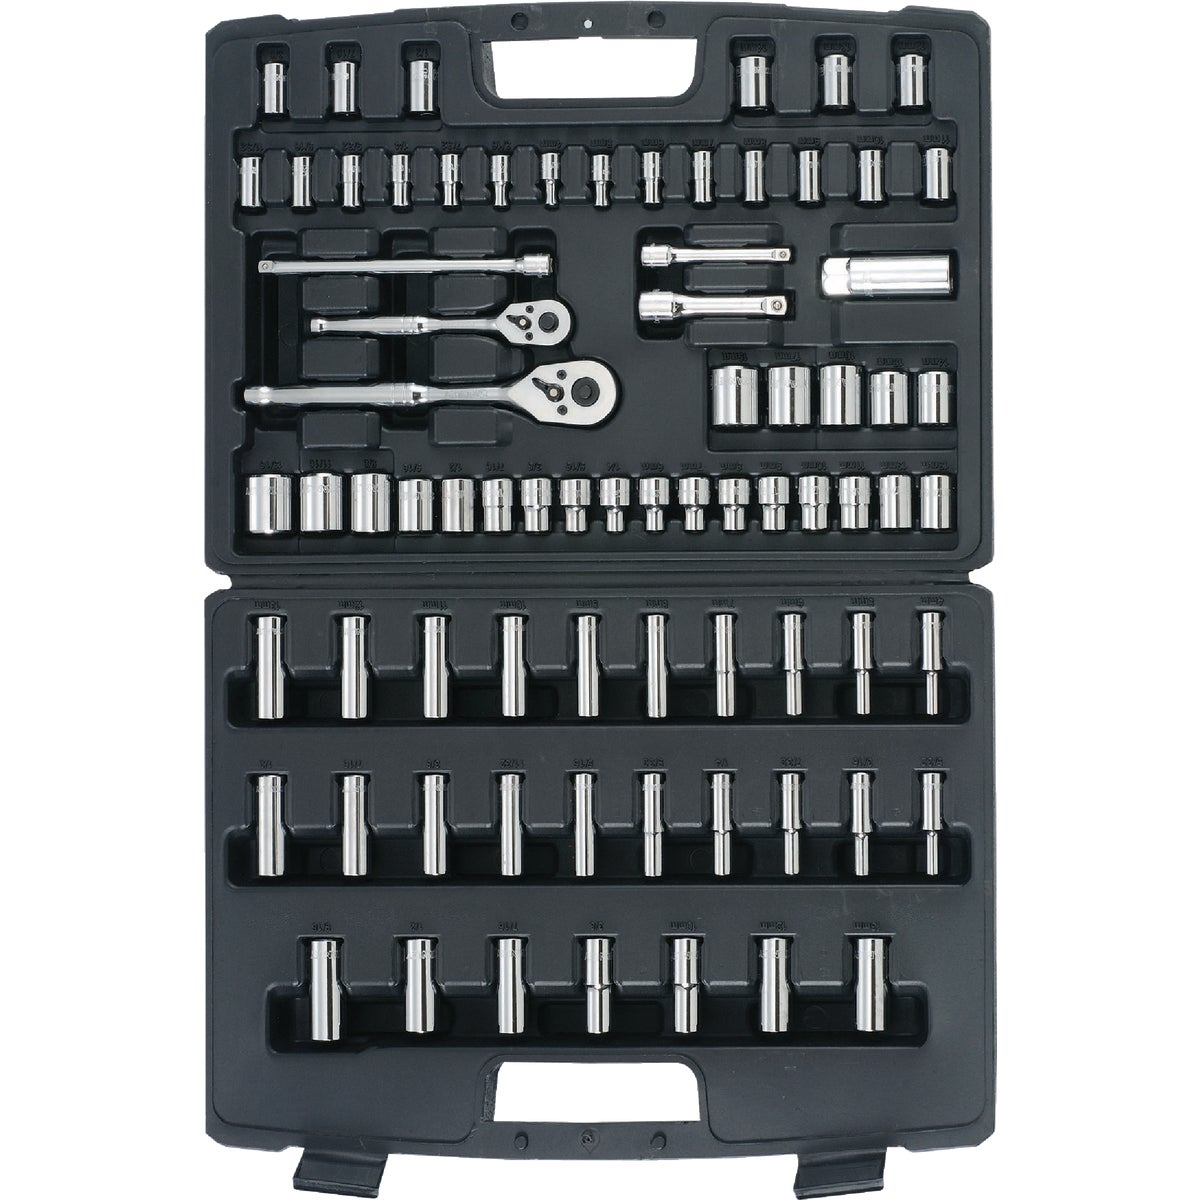 75PC MECHANICS TOOL SET - 96-010 by Stanley Tools